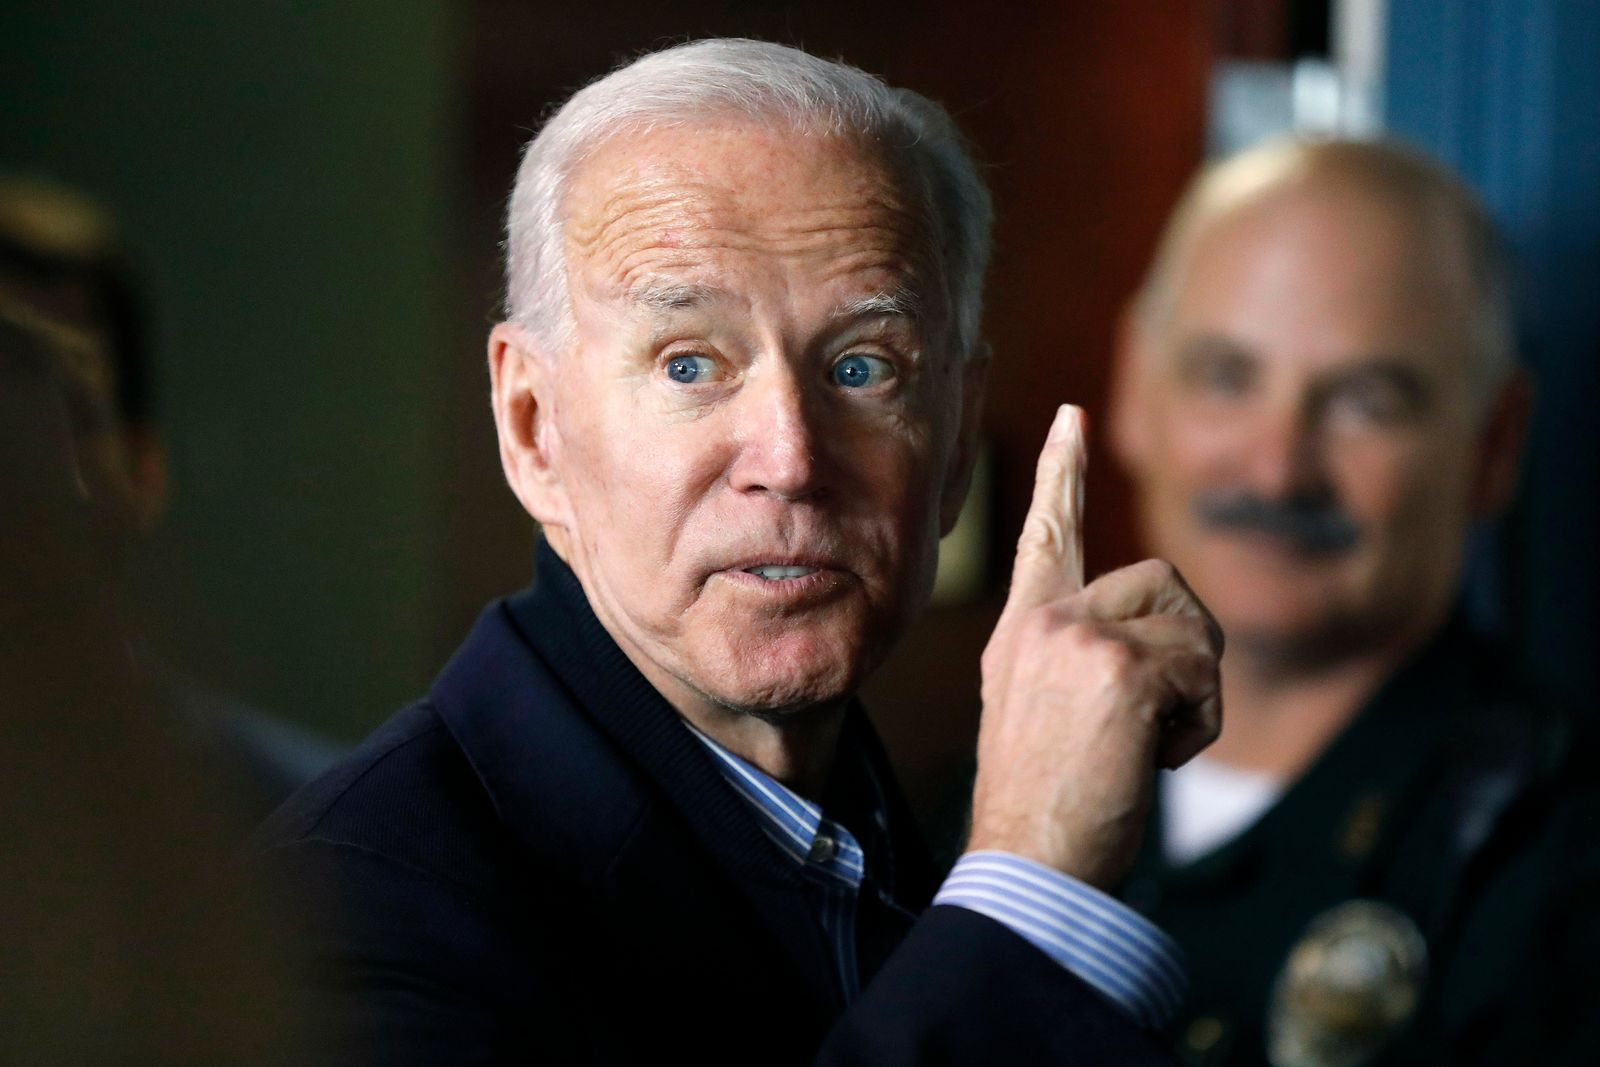 In this May 13, 2019, photo, former vice president and Democratic presidential candidate Joe Biden interacts with a supporter during a campaign stop at the Community Oven restaurant in Hampton, N.H. . (AP Photo/Michael Dwyer, File)